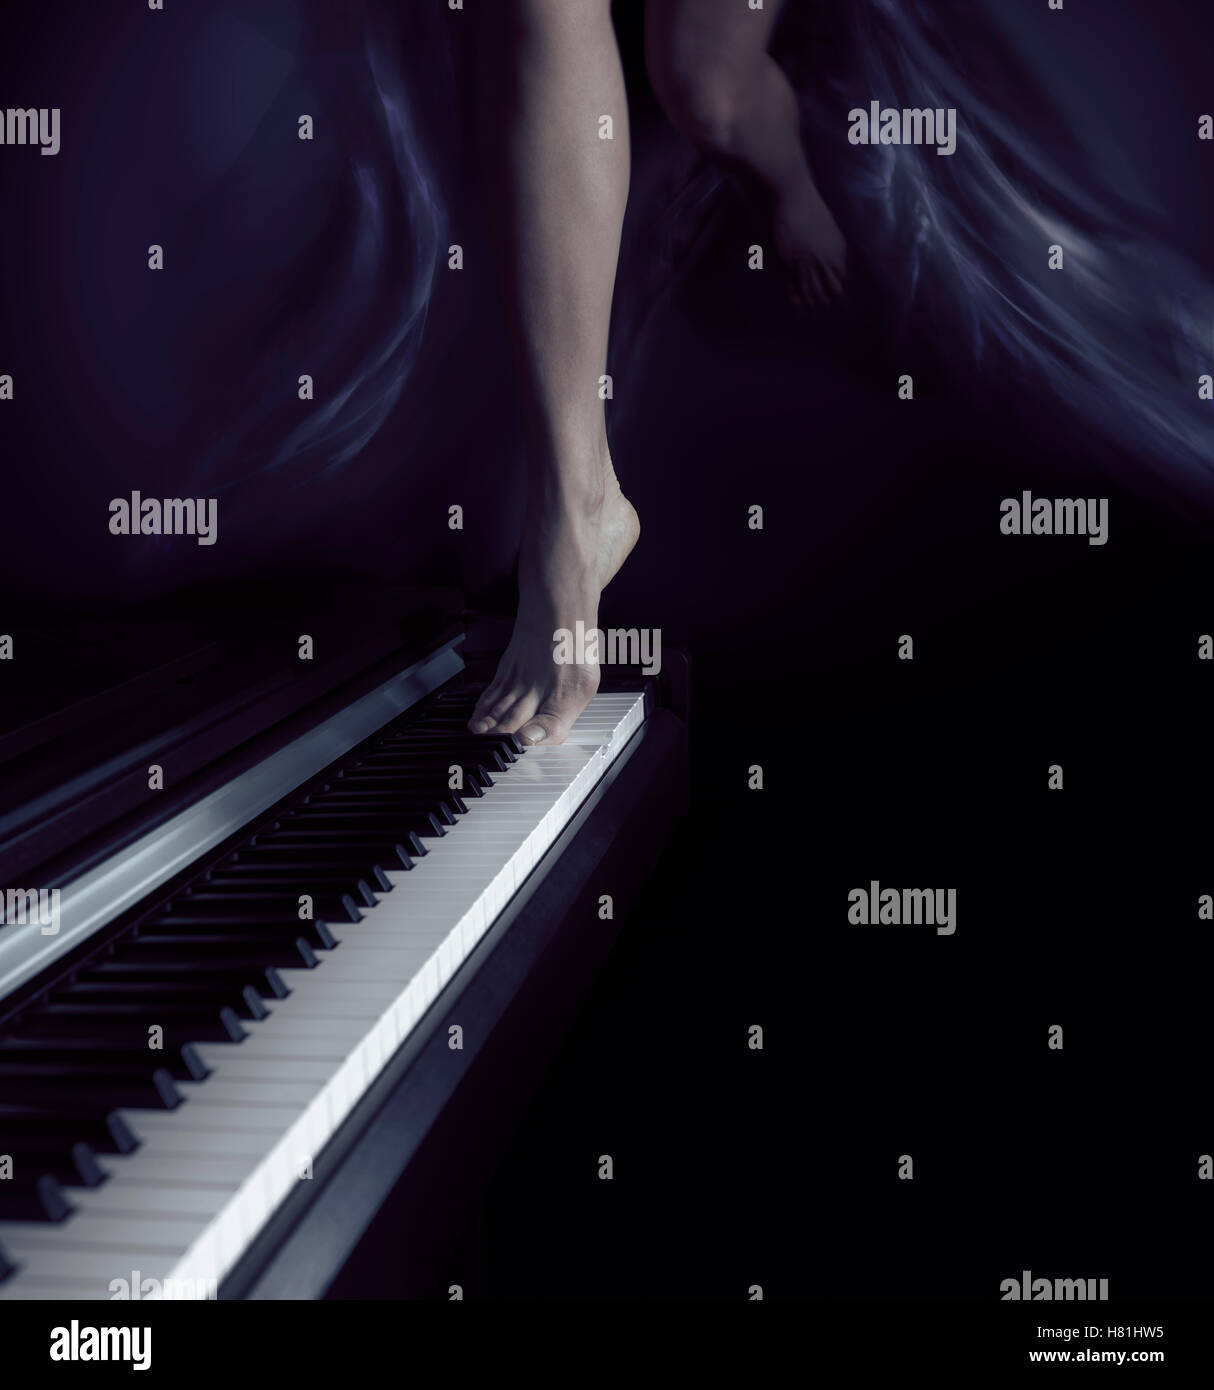 Woman bare legs dancing on a piano keyboard, music and dance artistic dream-like concept - Stock Image